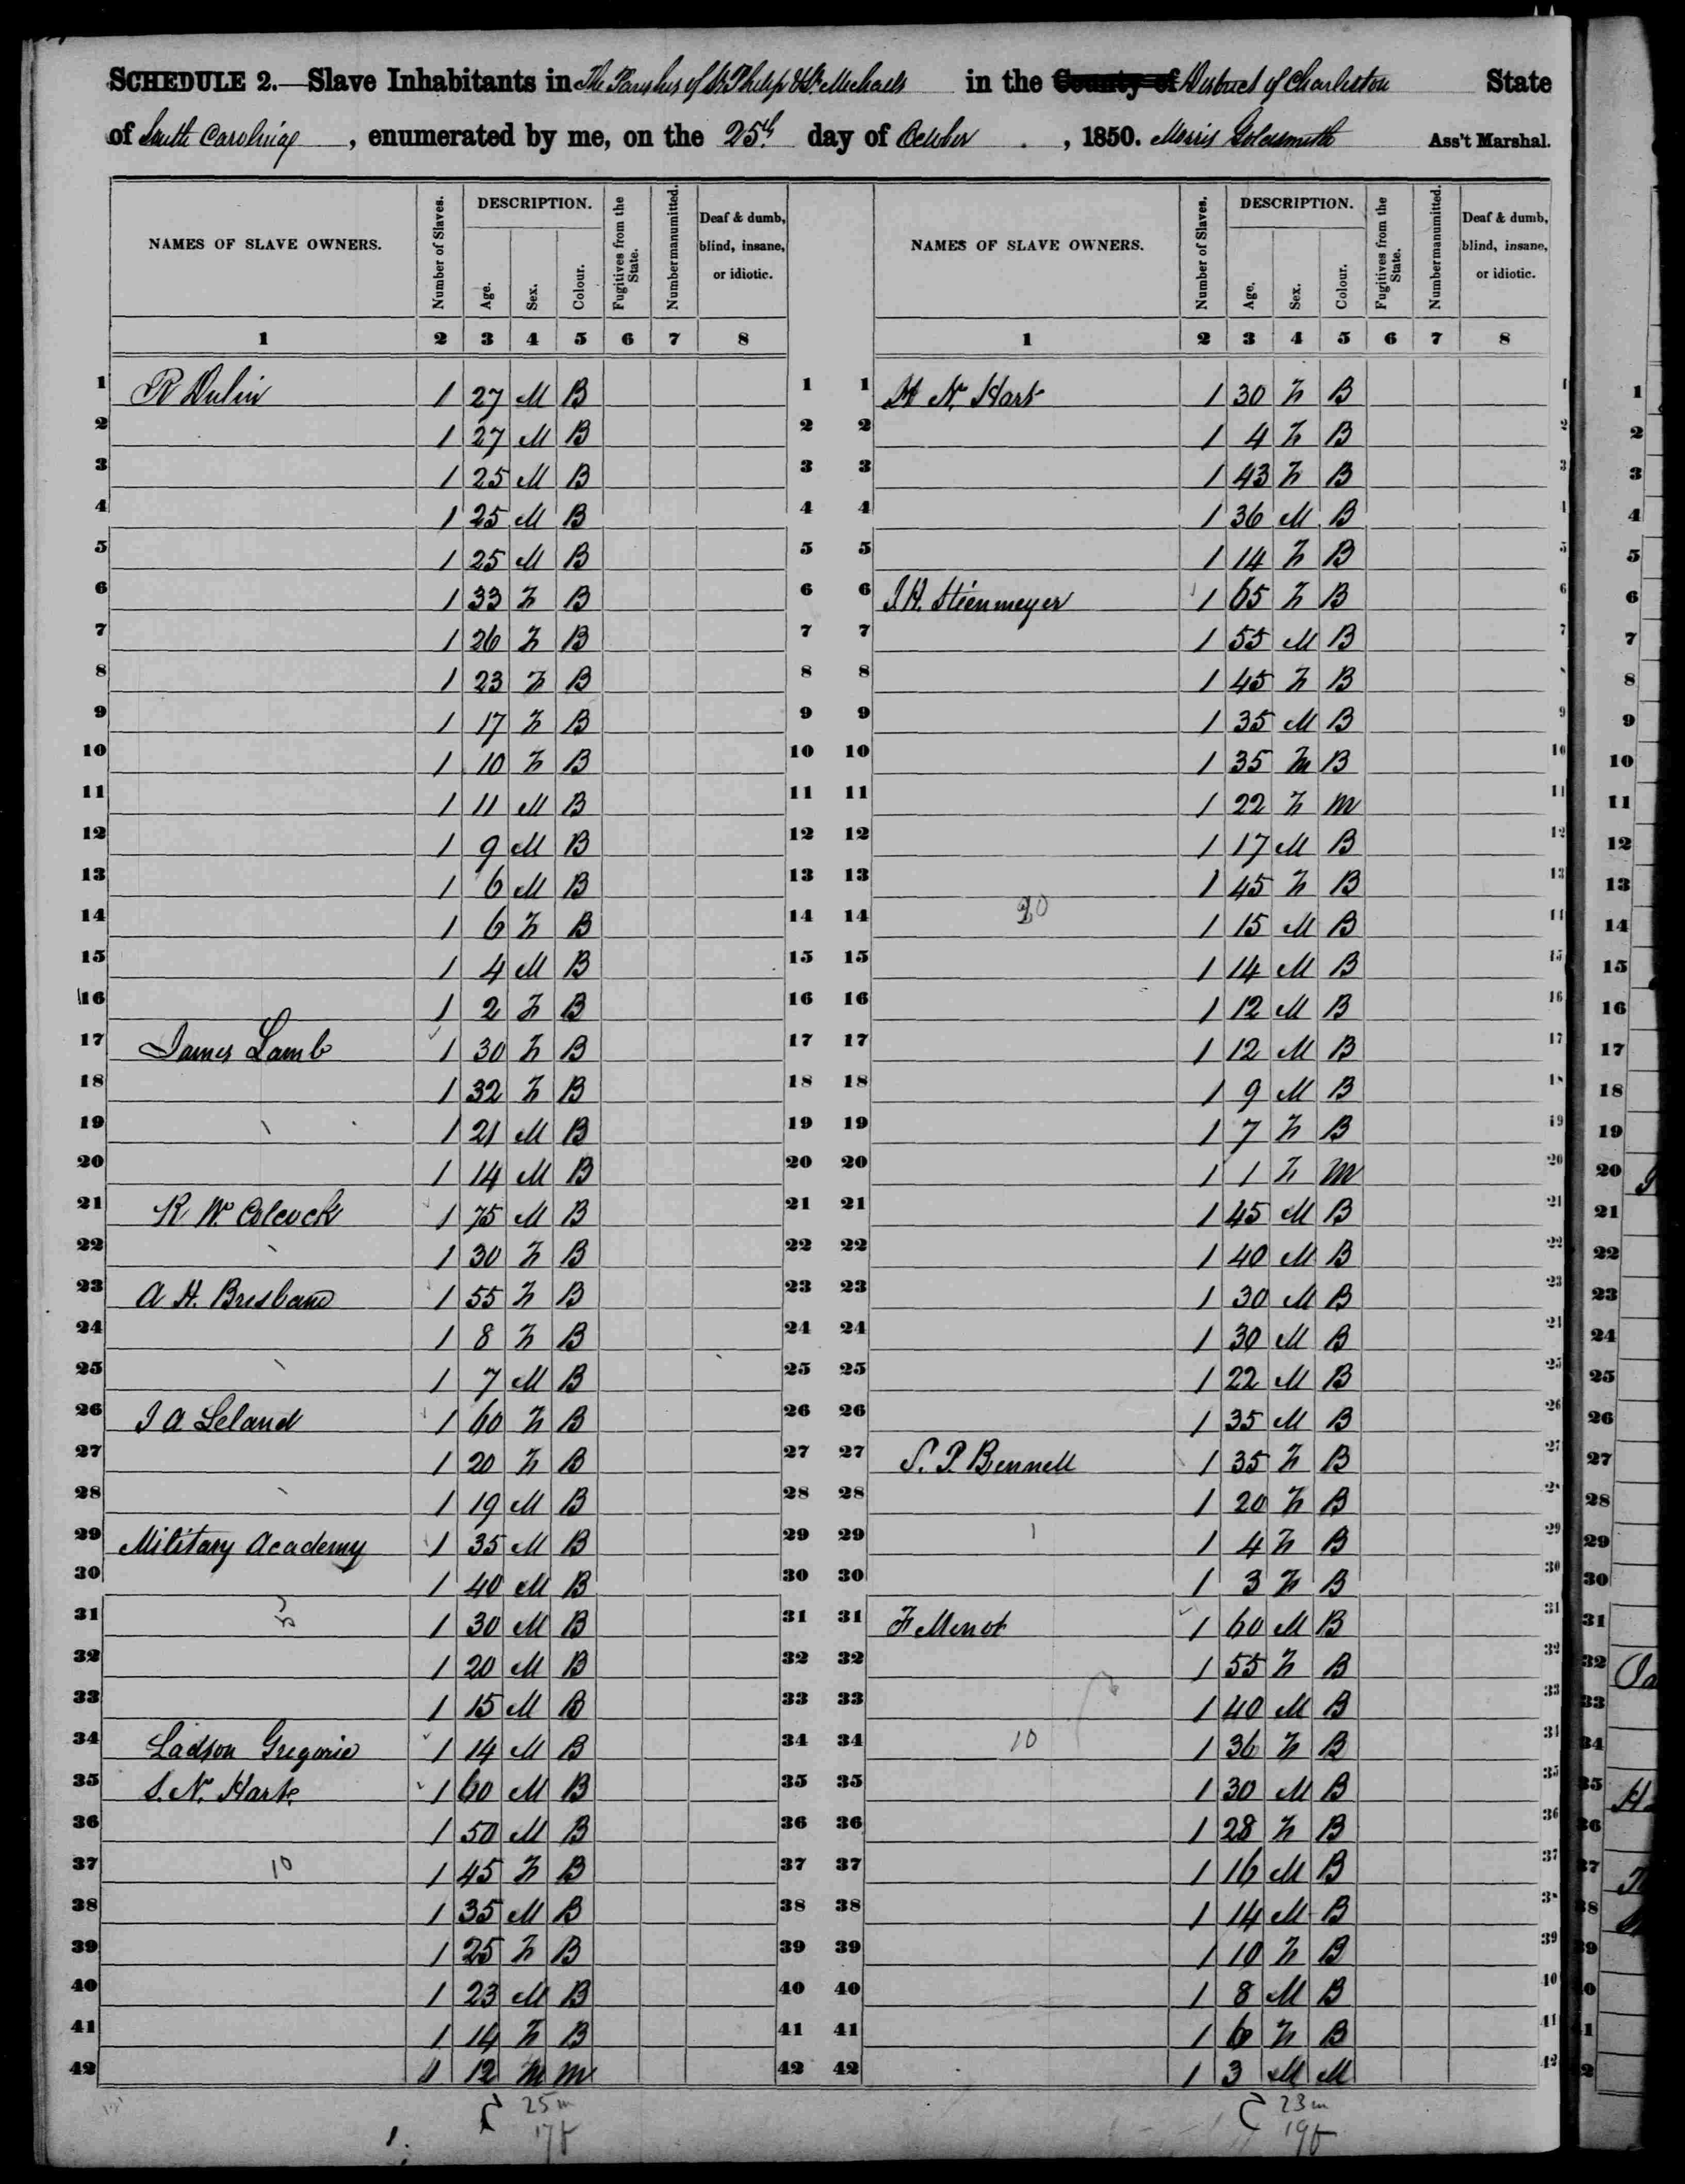 1850 U.S. Census Slave Schedule